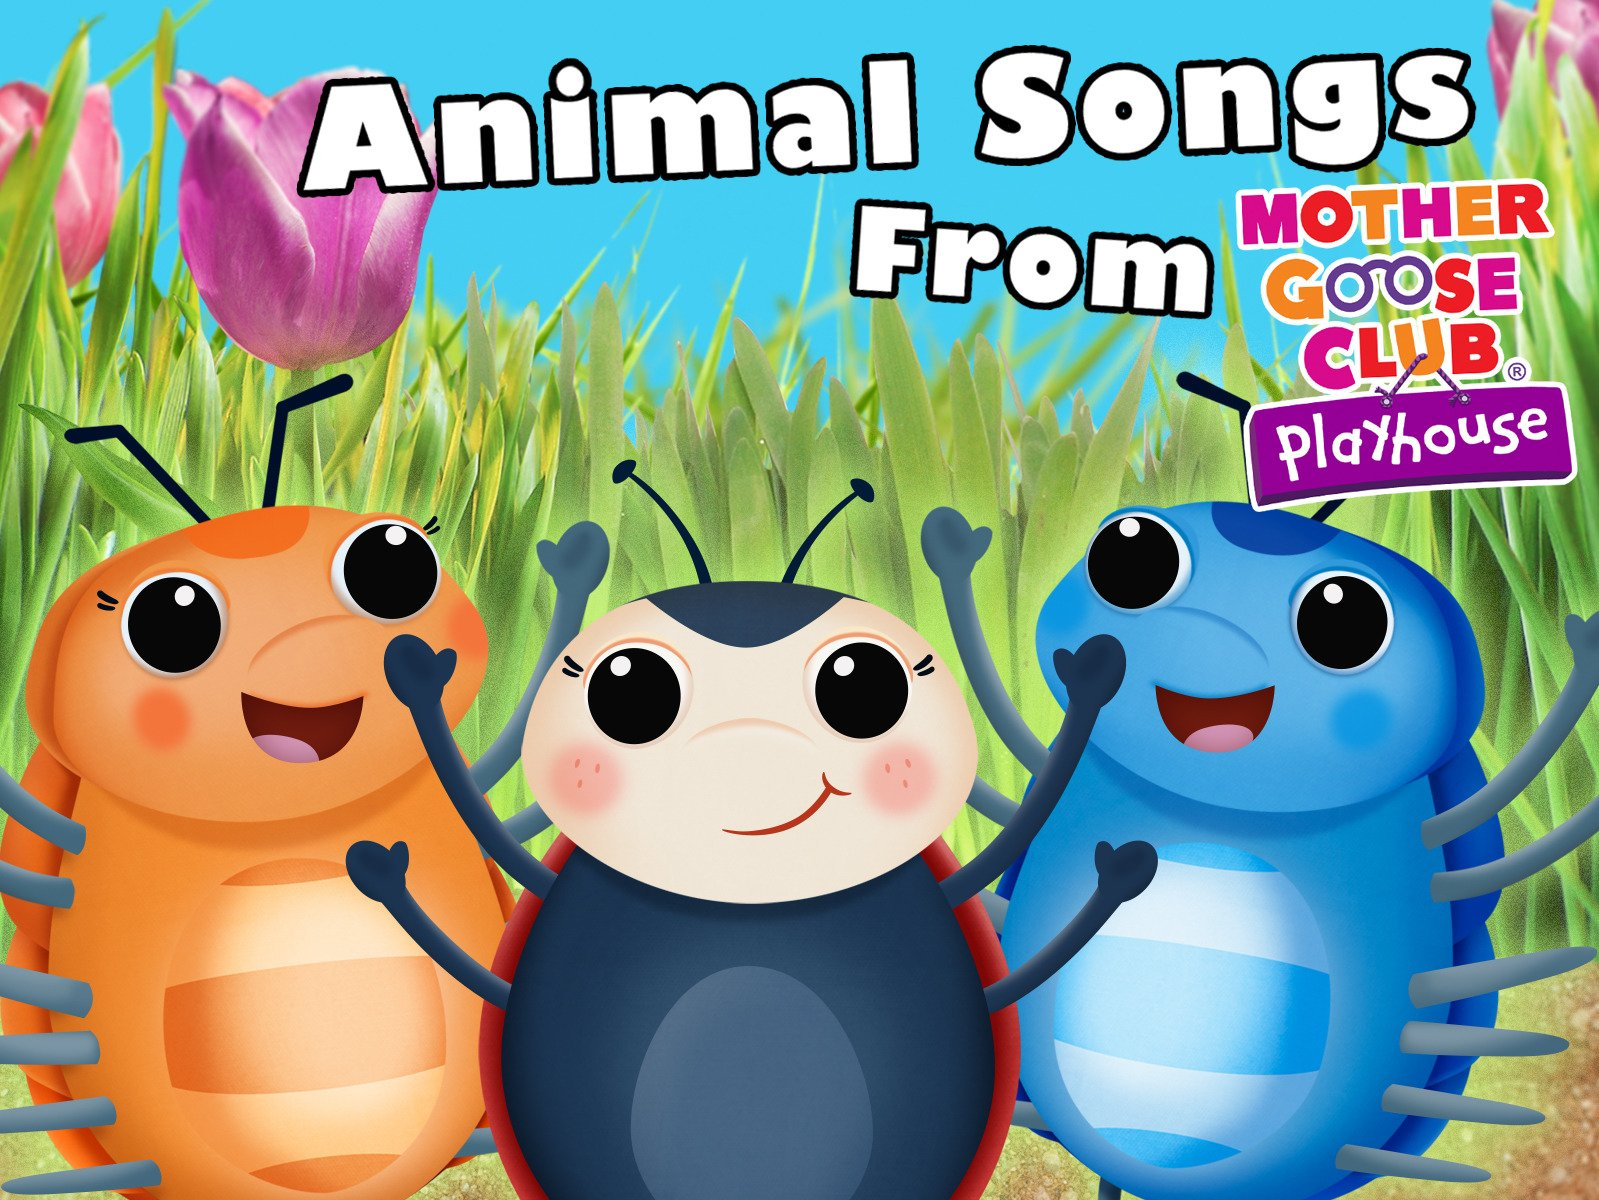 Animal Songs From Mother Goose Club Playhouse - Season 1